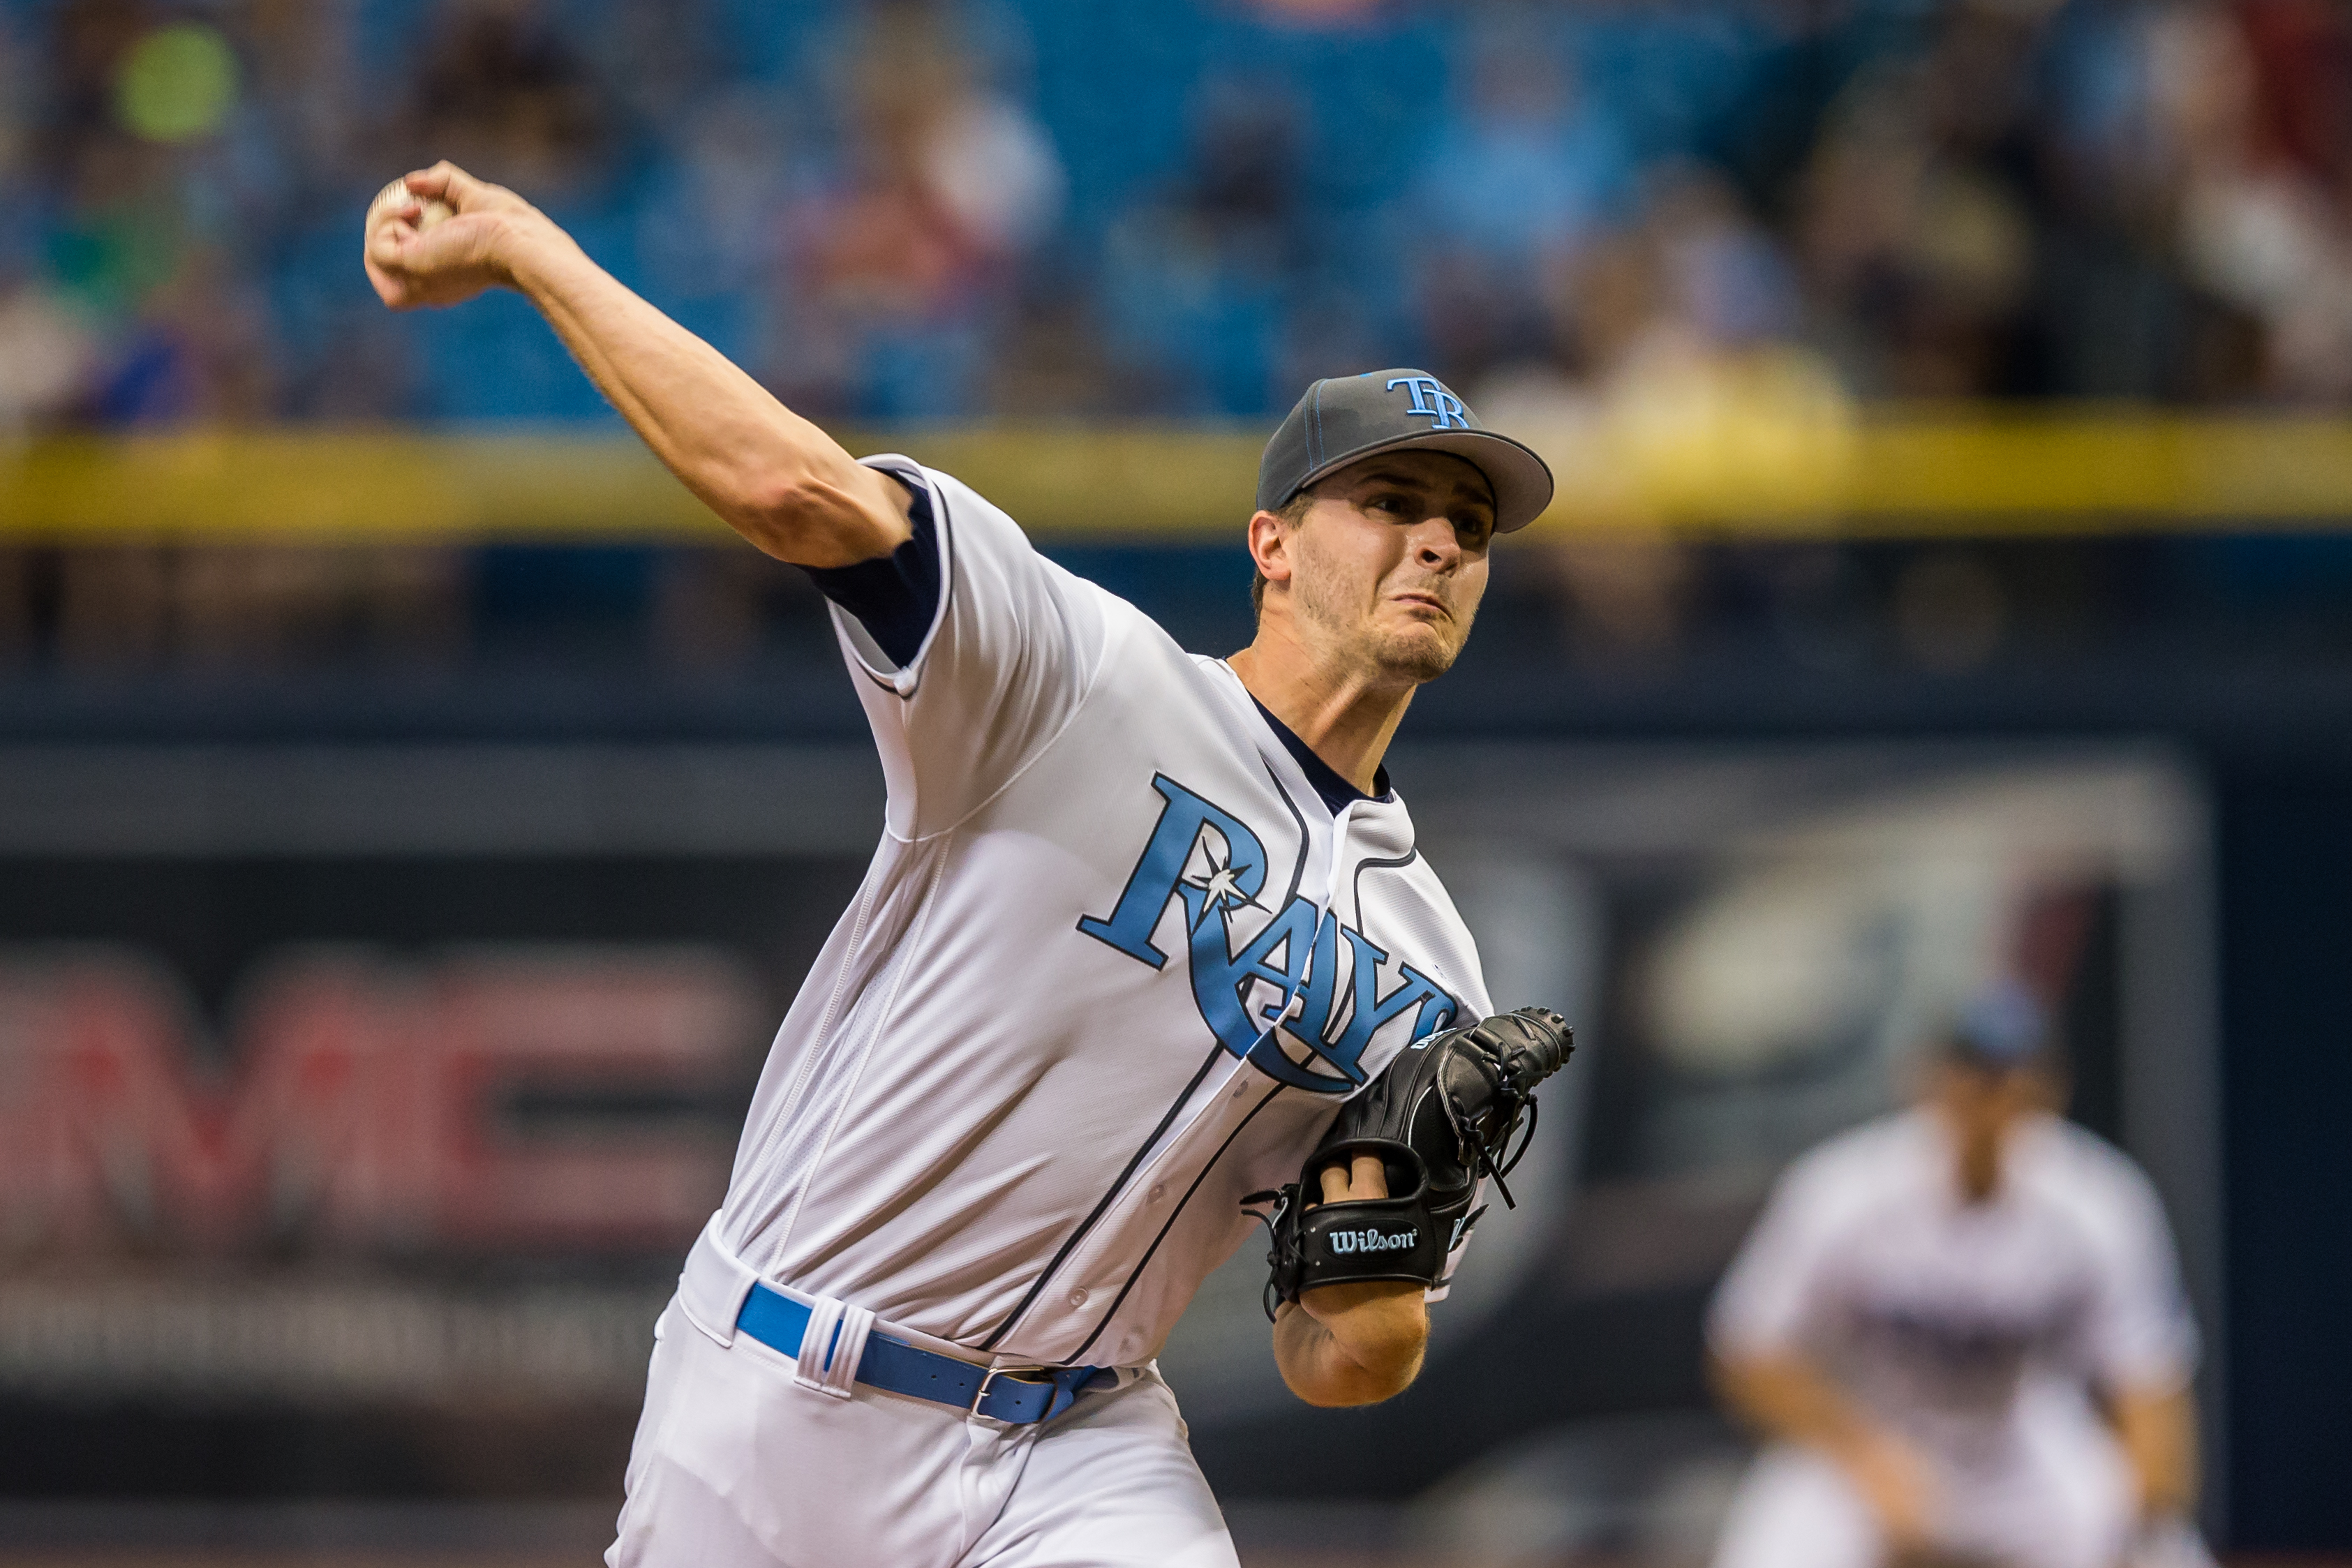 Odorizzi led the Rays' pitchers in wins with 10./TRAVIS PENDERGRASS